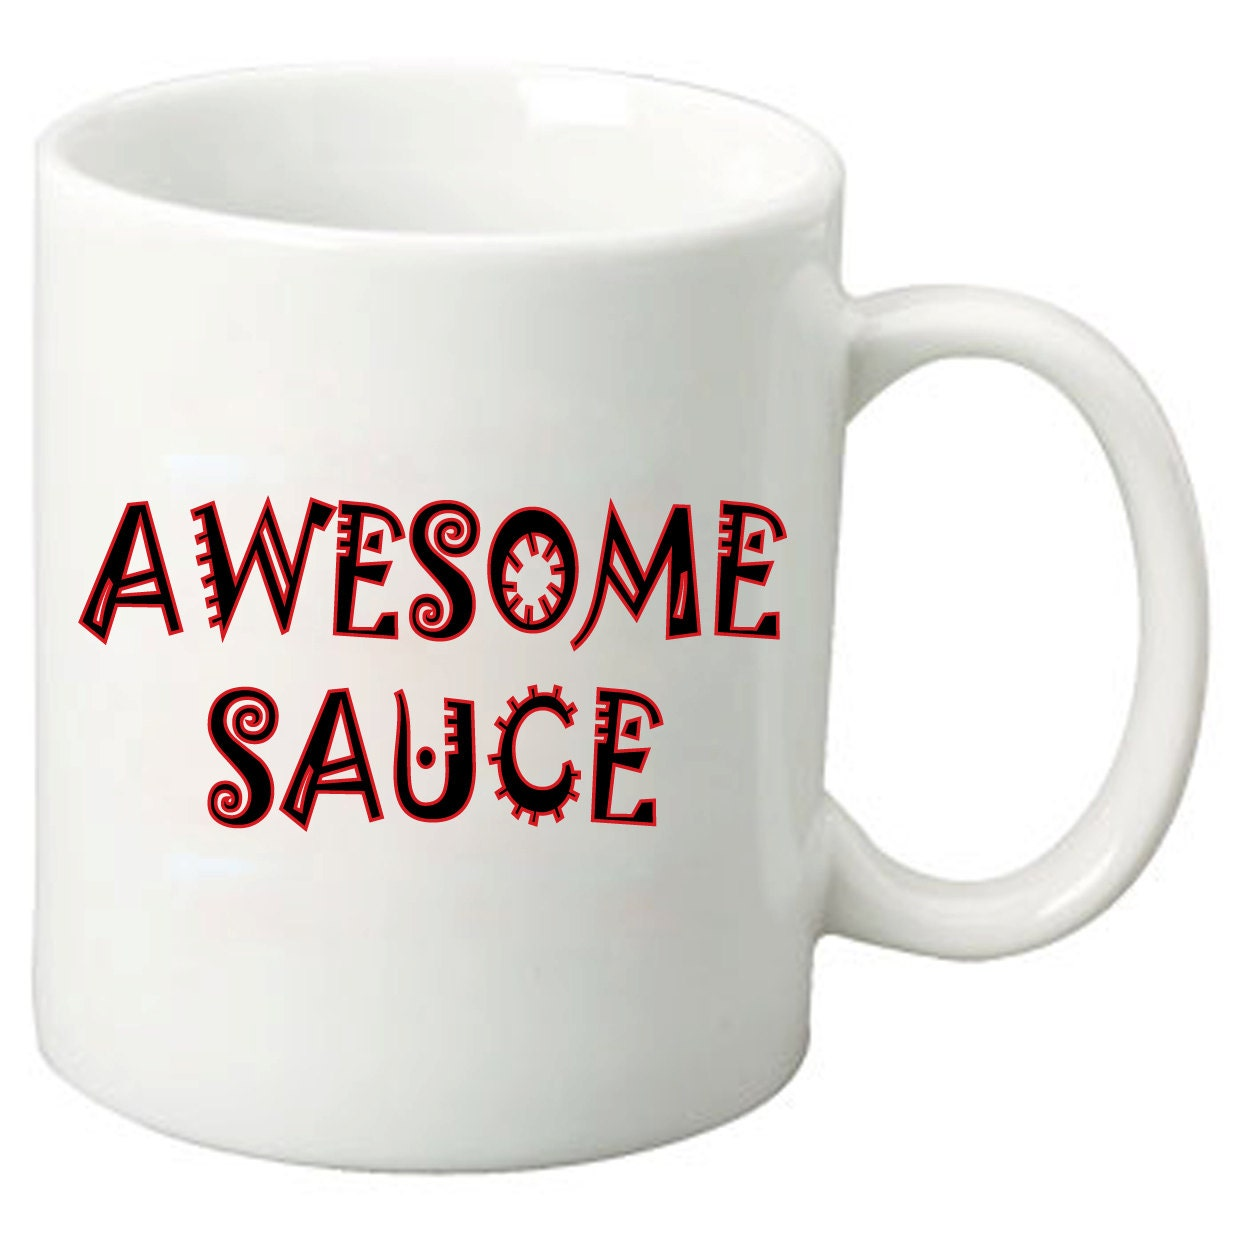 awesome coffee mugs awesome sauce 11 oz coffee mugs best geeky nerdy 11419